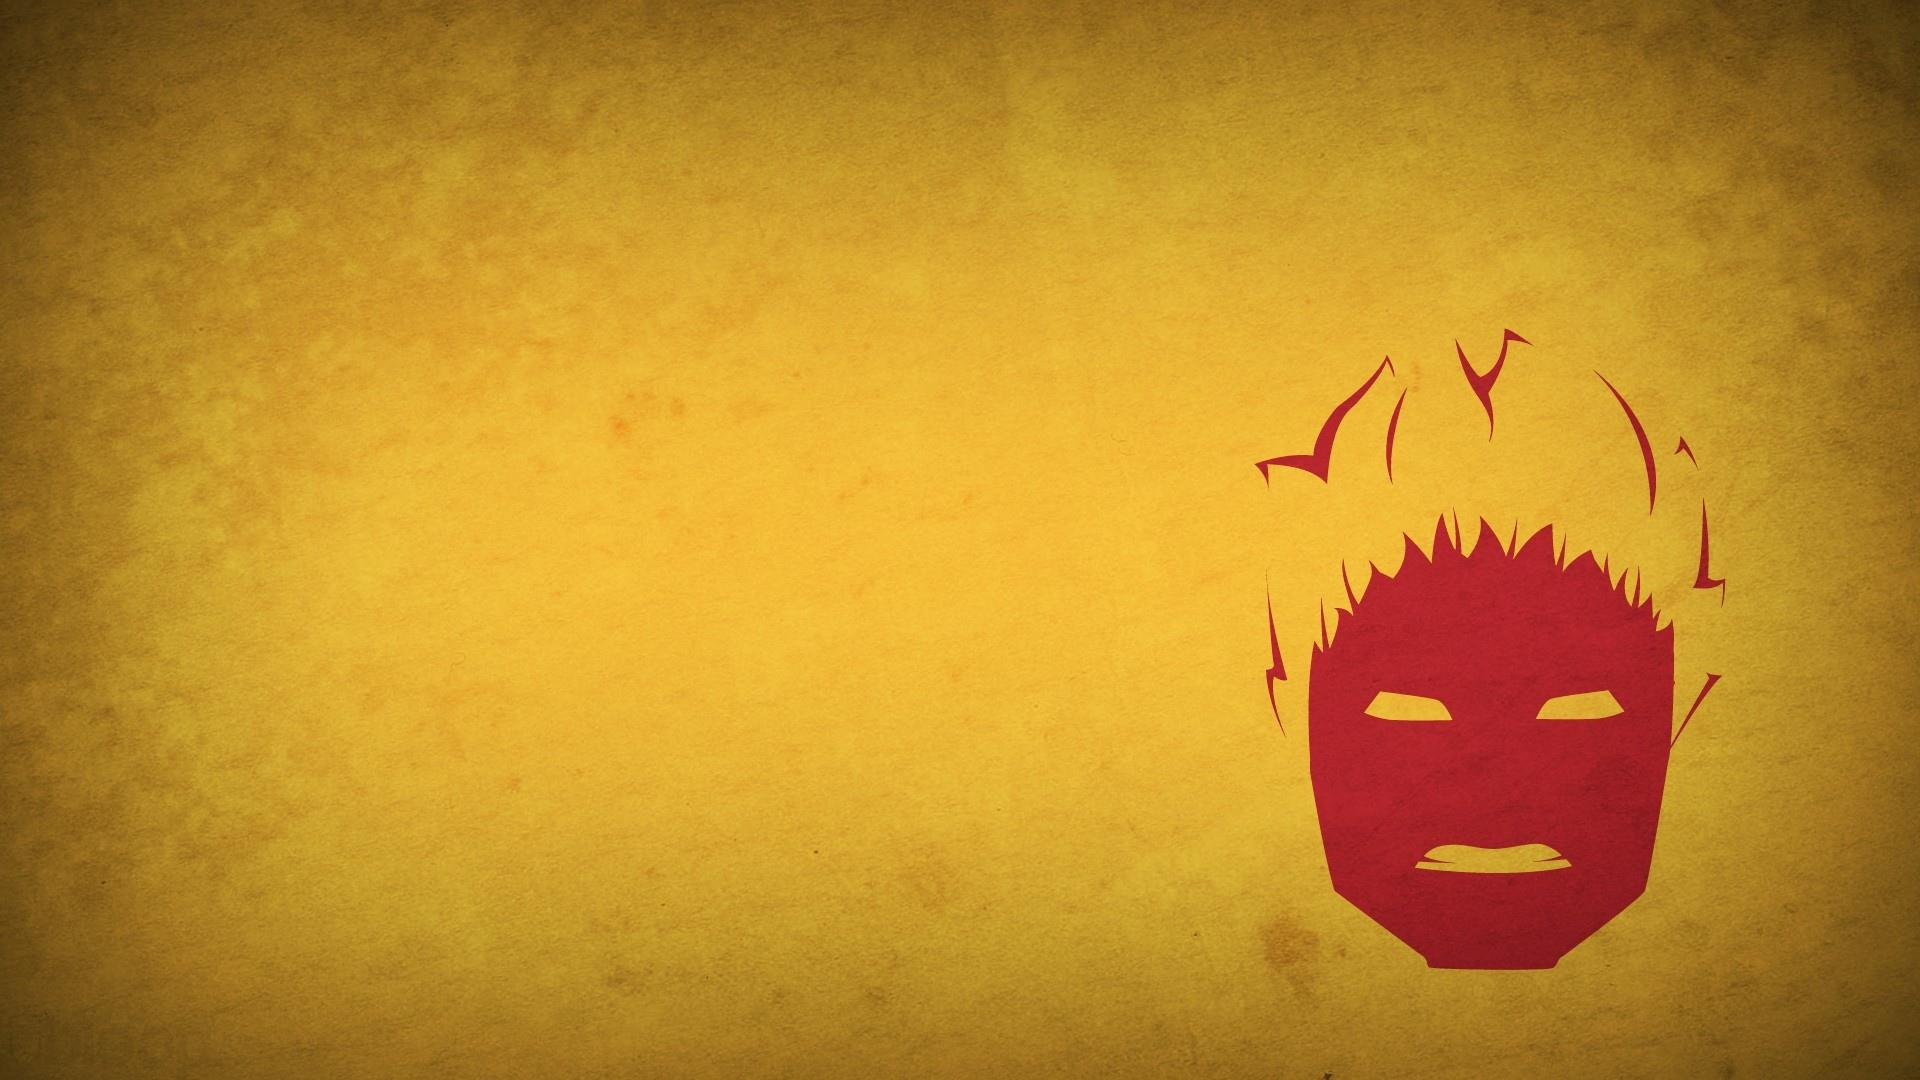 Human Torch wallpapers HD quality